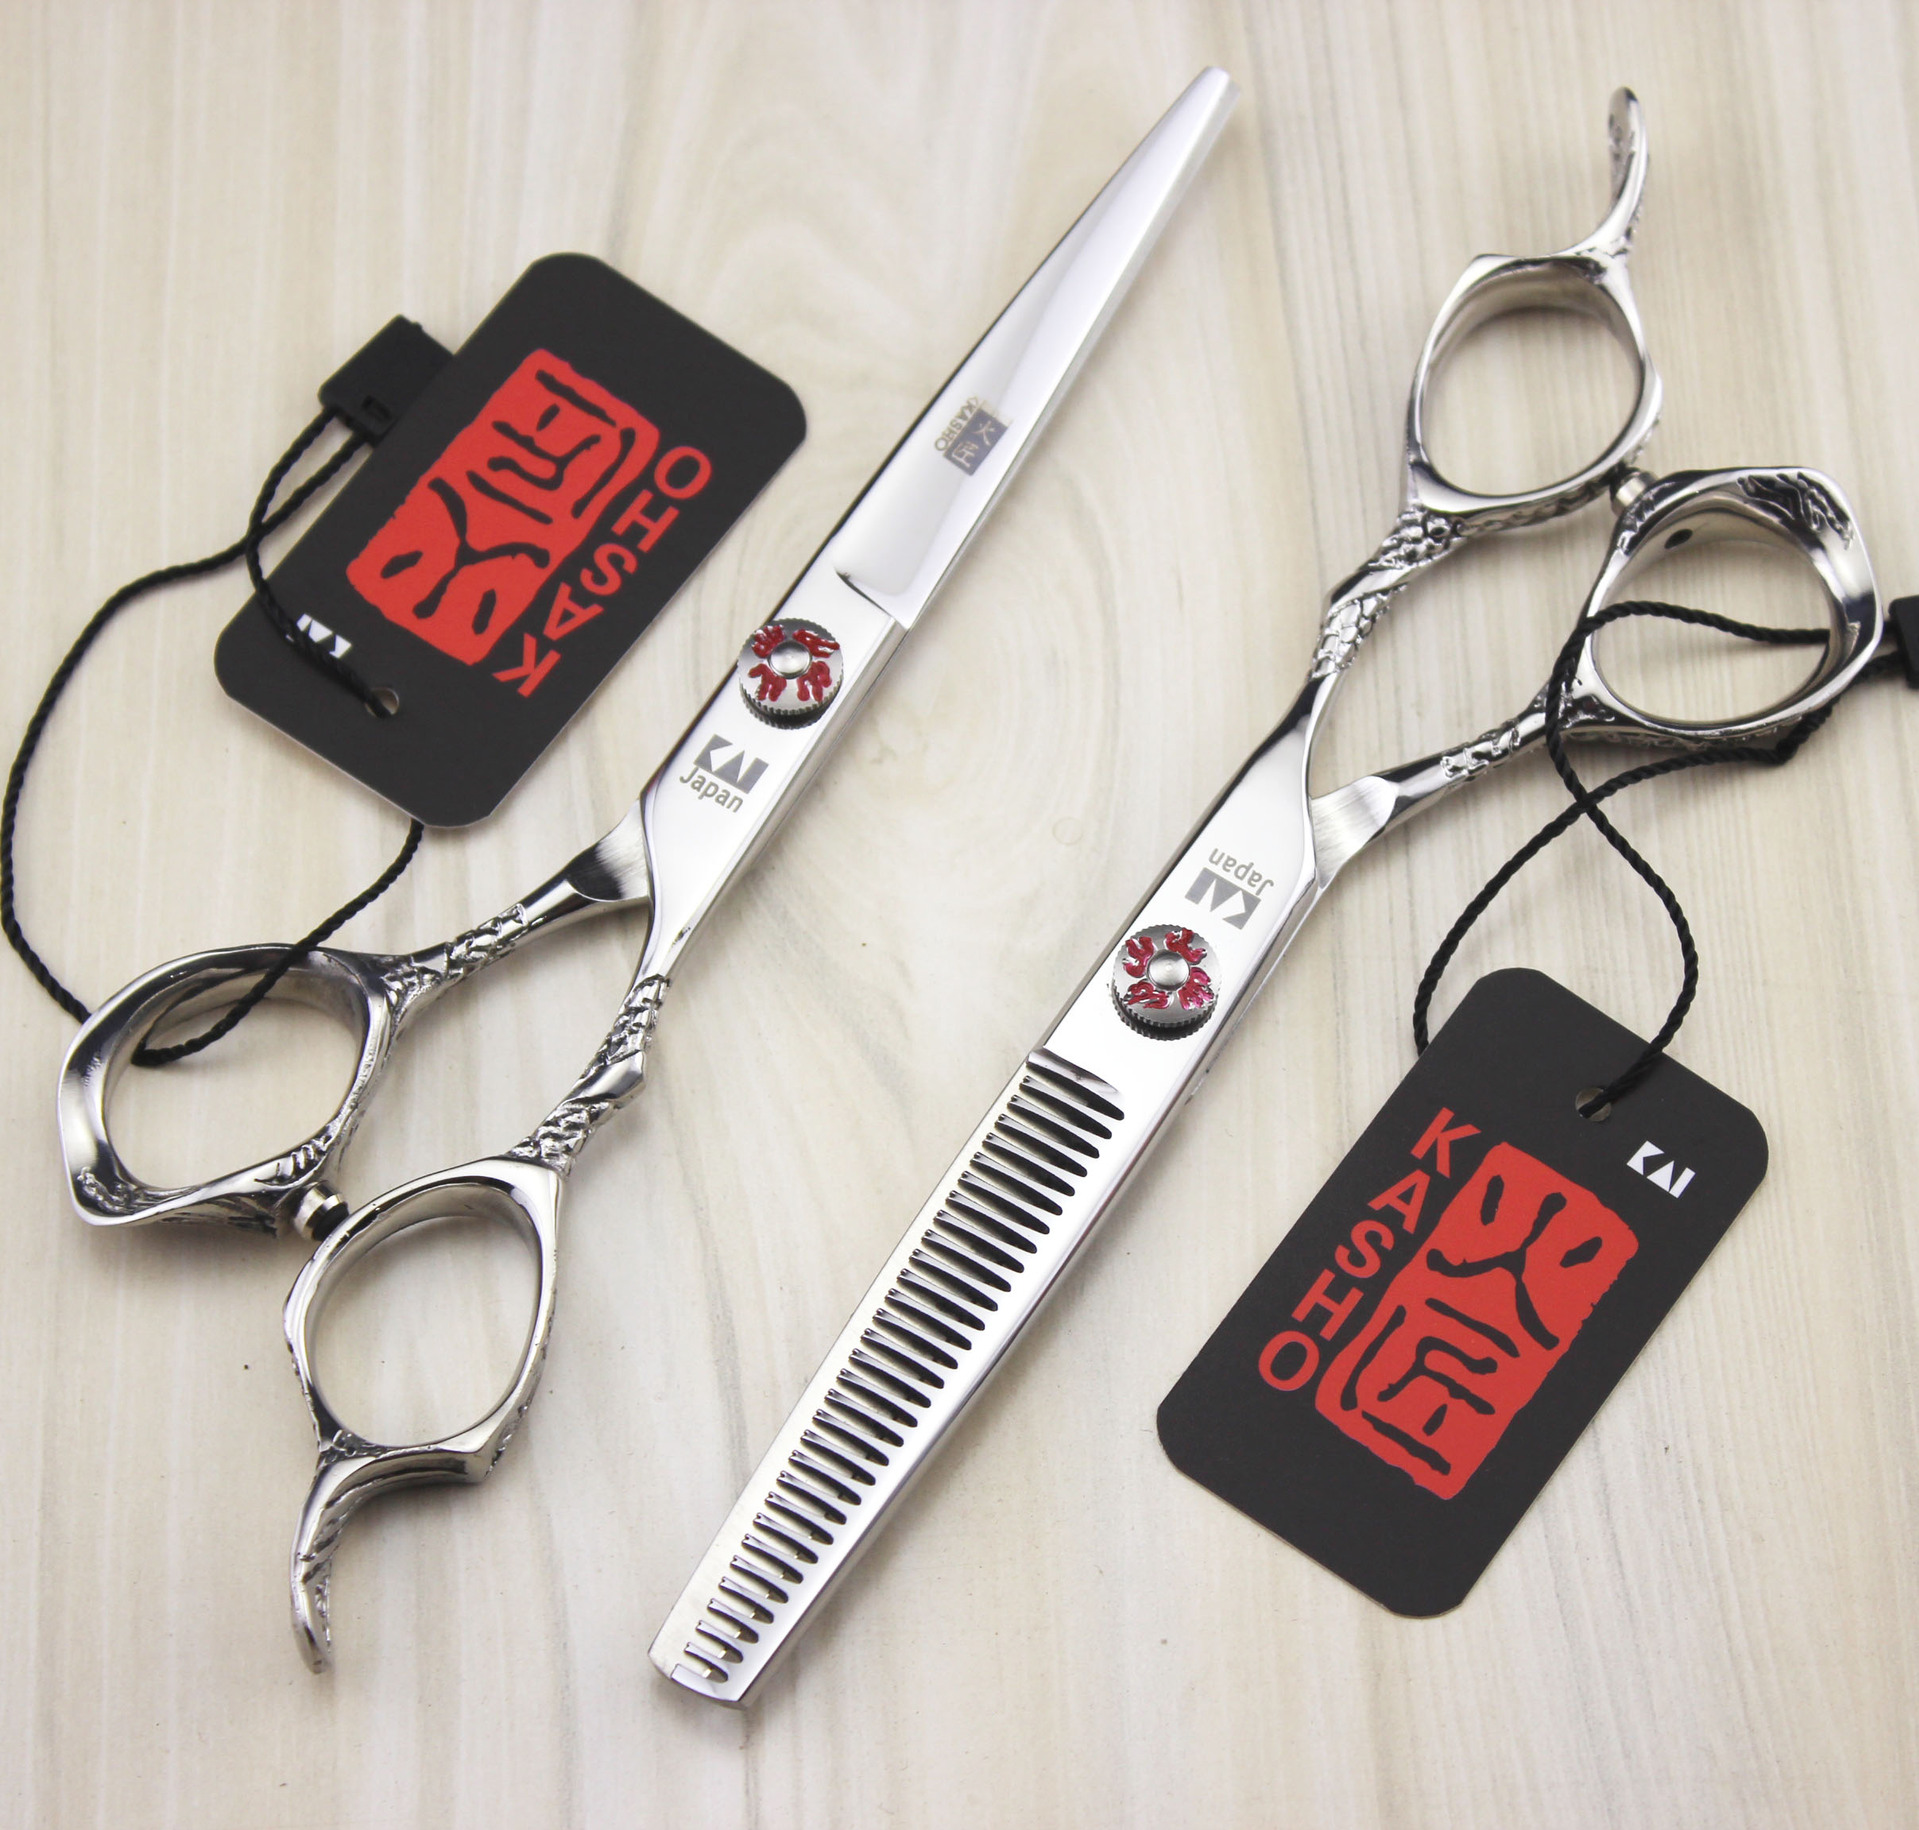 6.0 Kasho Professional hair scissors hairdressing scissors barber scissors hair cutting shears thinning hairdresser 2pcs set 6 inch 32 teeth hairdressing thinning hair scissor professional with leather bag barber shop hairdresser shears tools hk632vyb